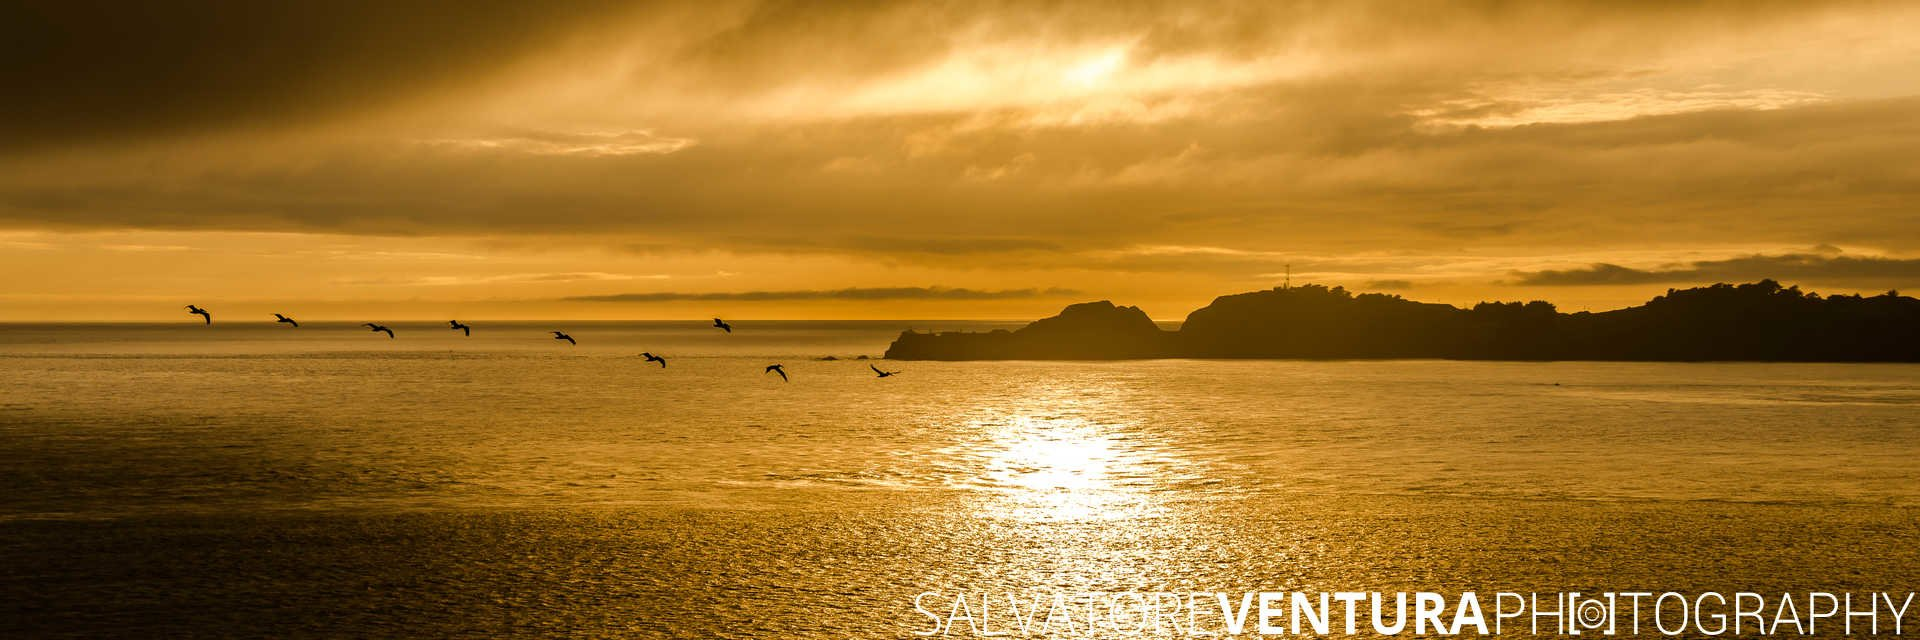 Point Bonita Lighthouse at Golden Sunset with pelicans - Salvatore Ventura Ph[o]tography